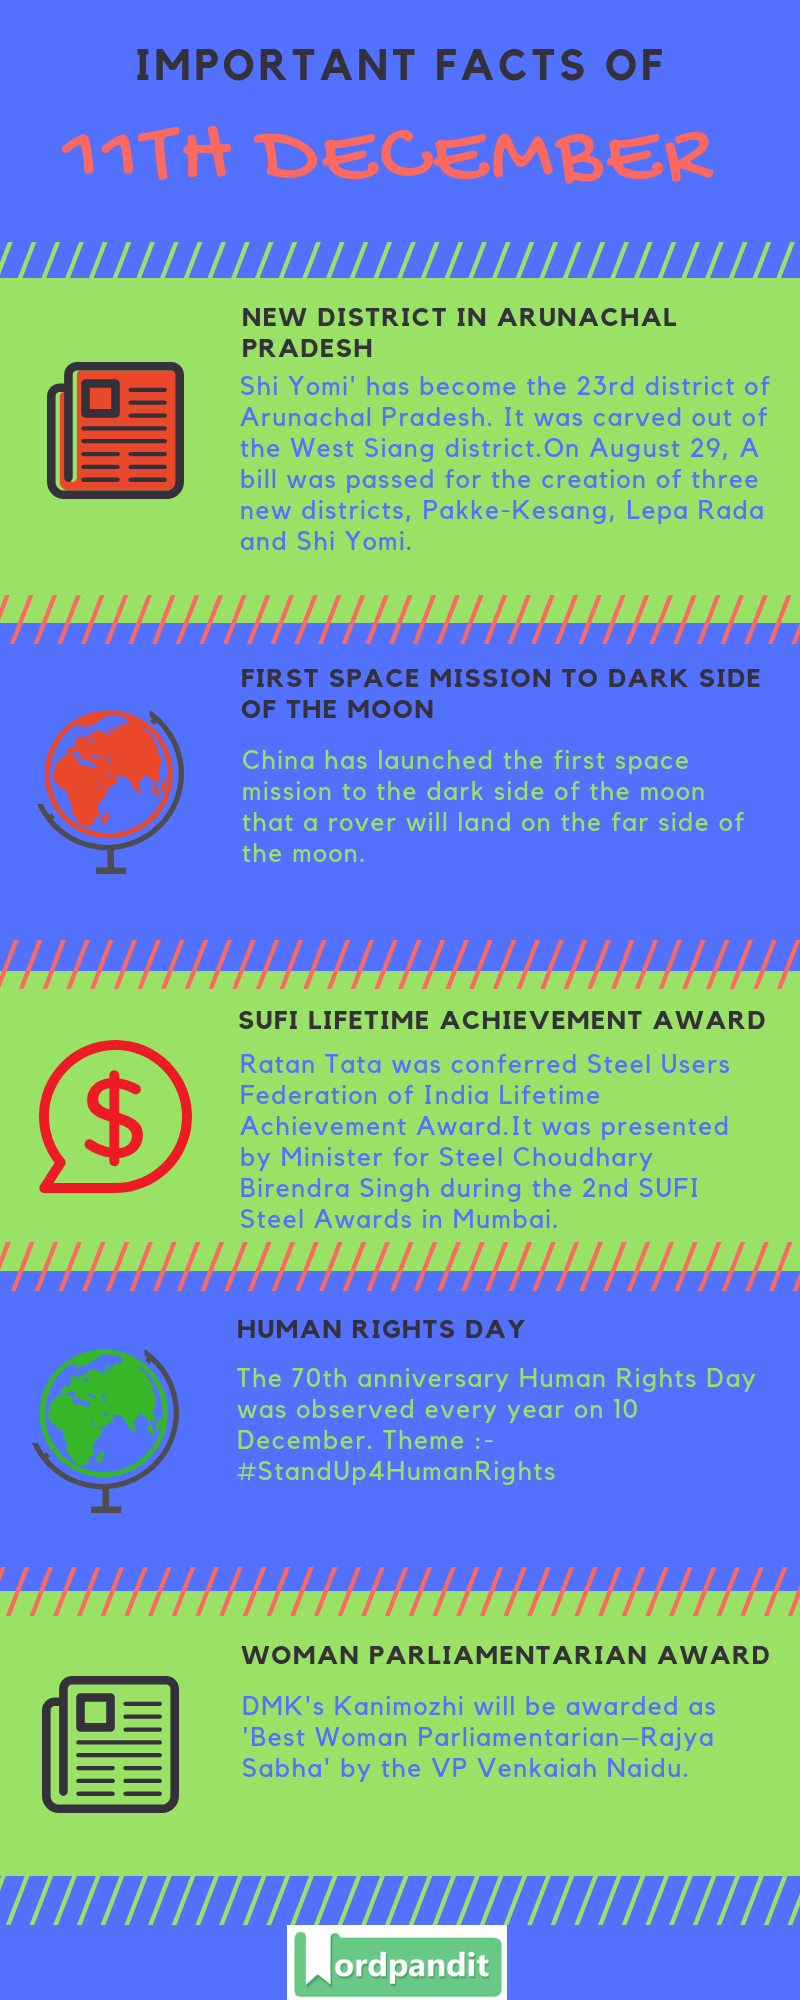 Daily Current Affairs 11 December 2018 Current Affairs Quiz 11 December 2018 Current Affairs Infographic